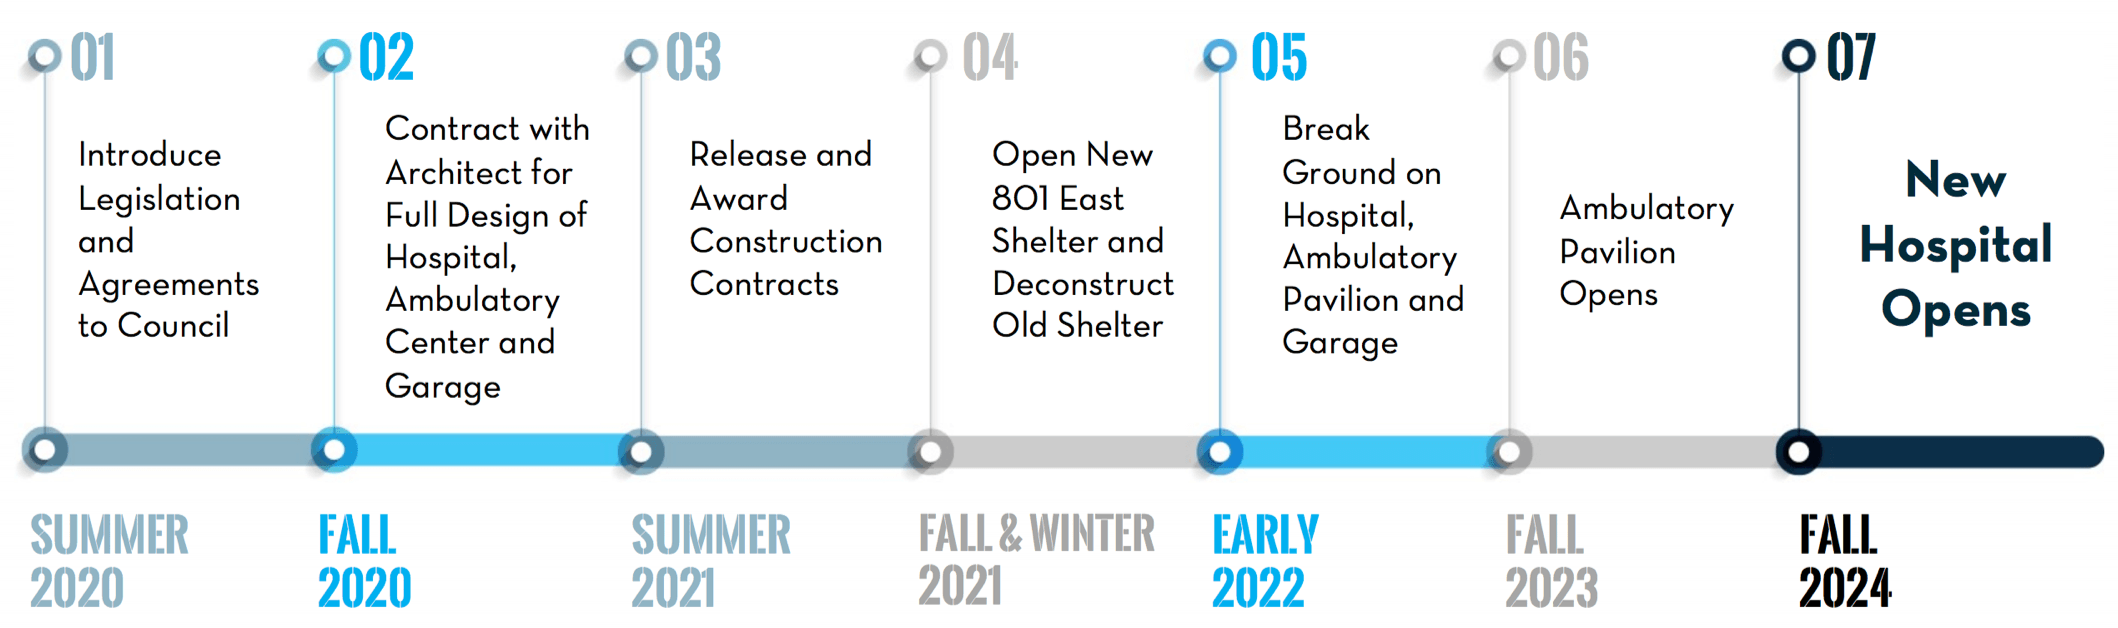 Timeline for hospital development